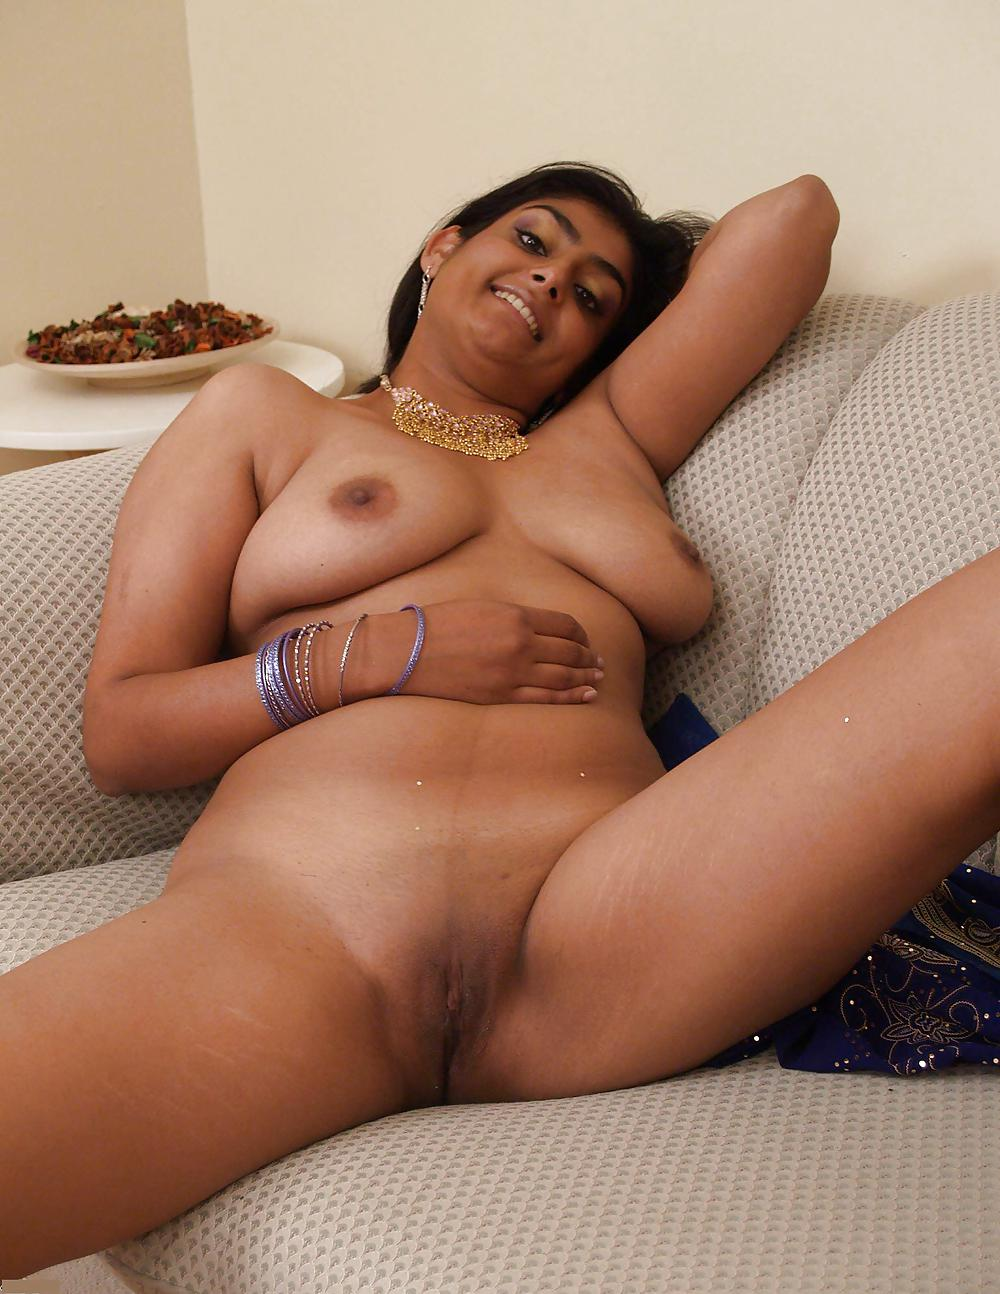 roberts-indian-sex-nude-girls-porn-pictures-arab-girls